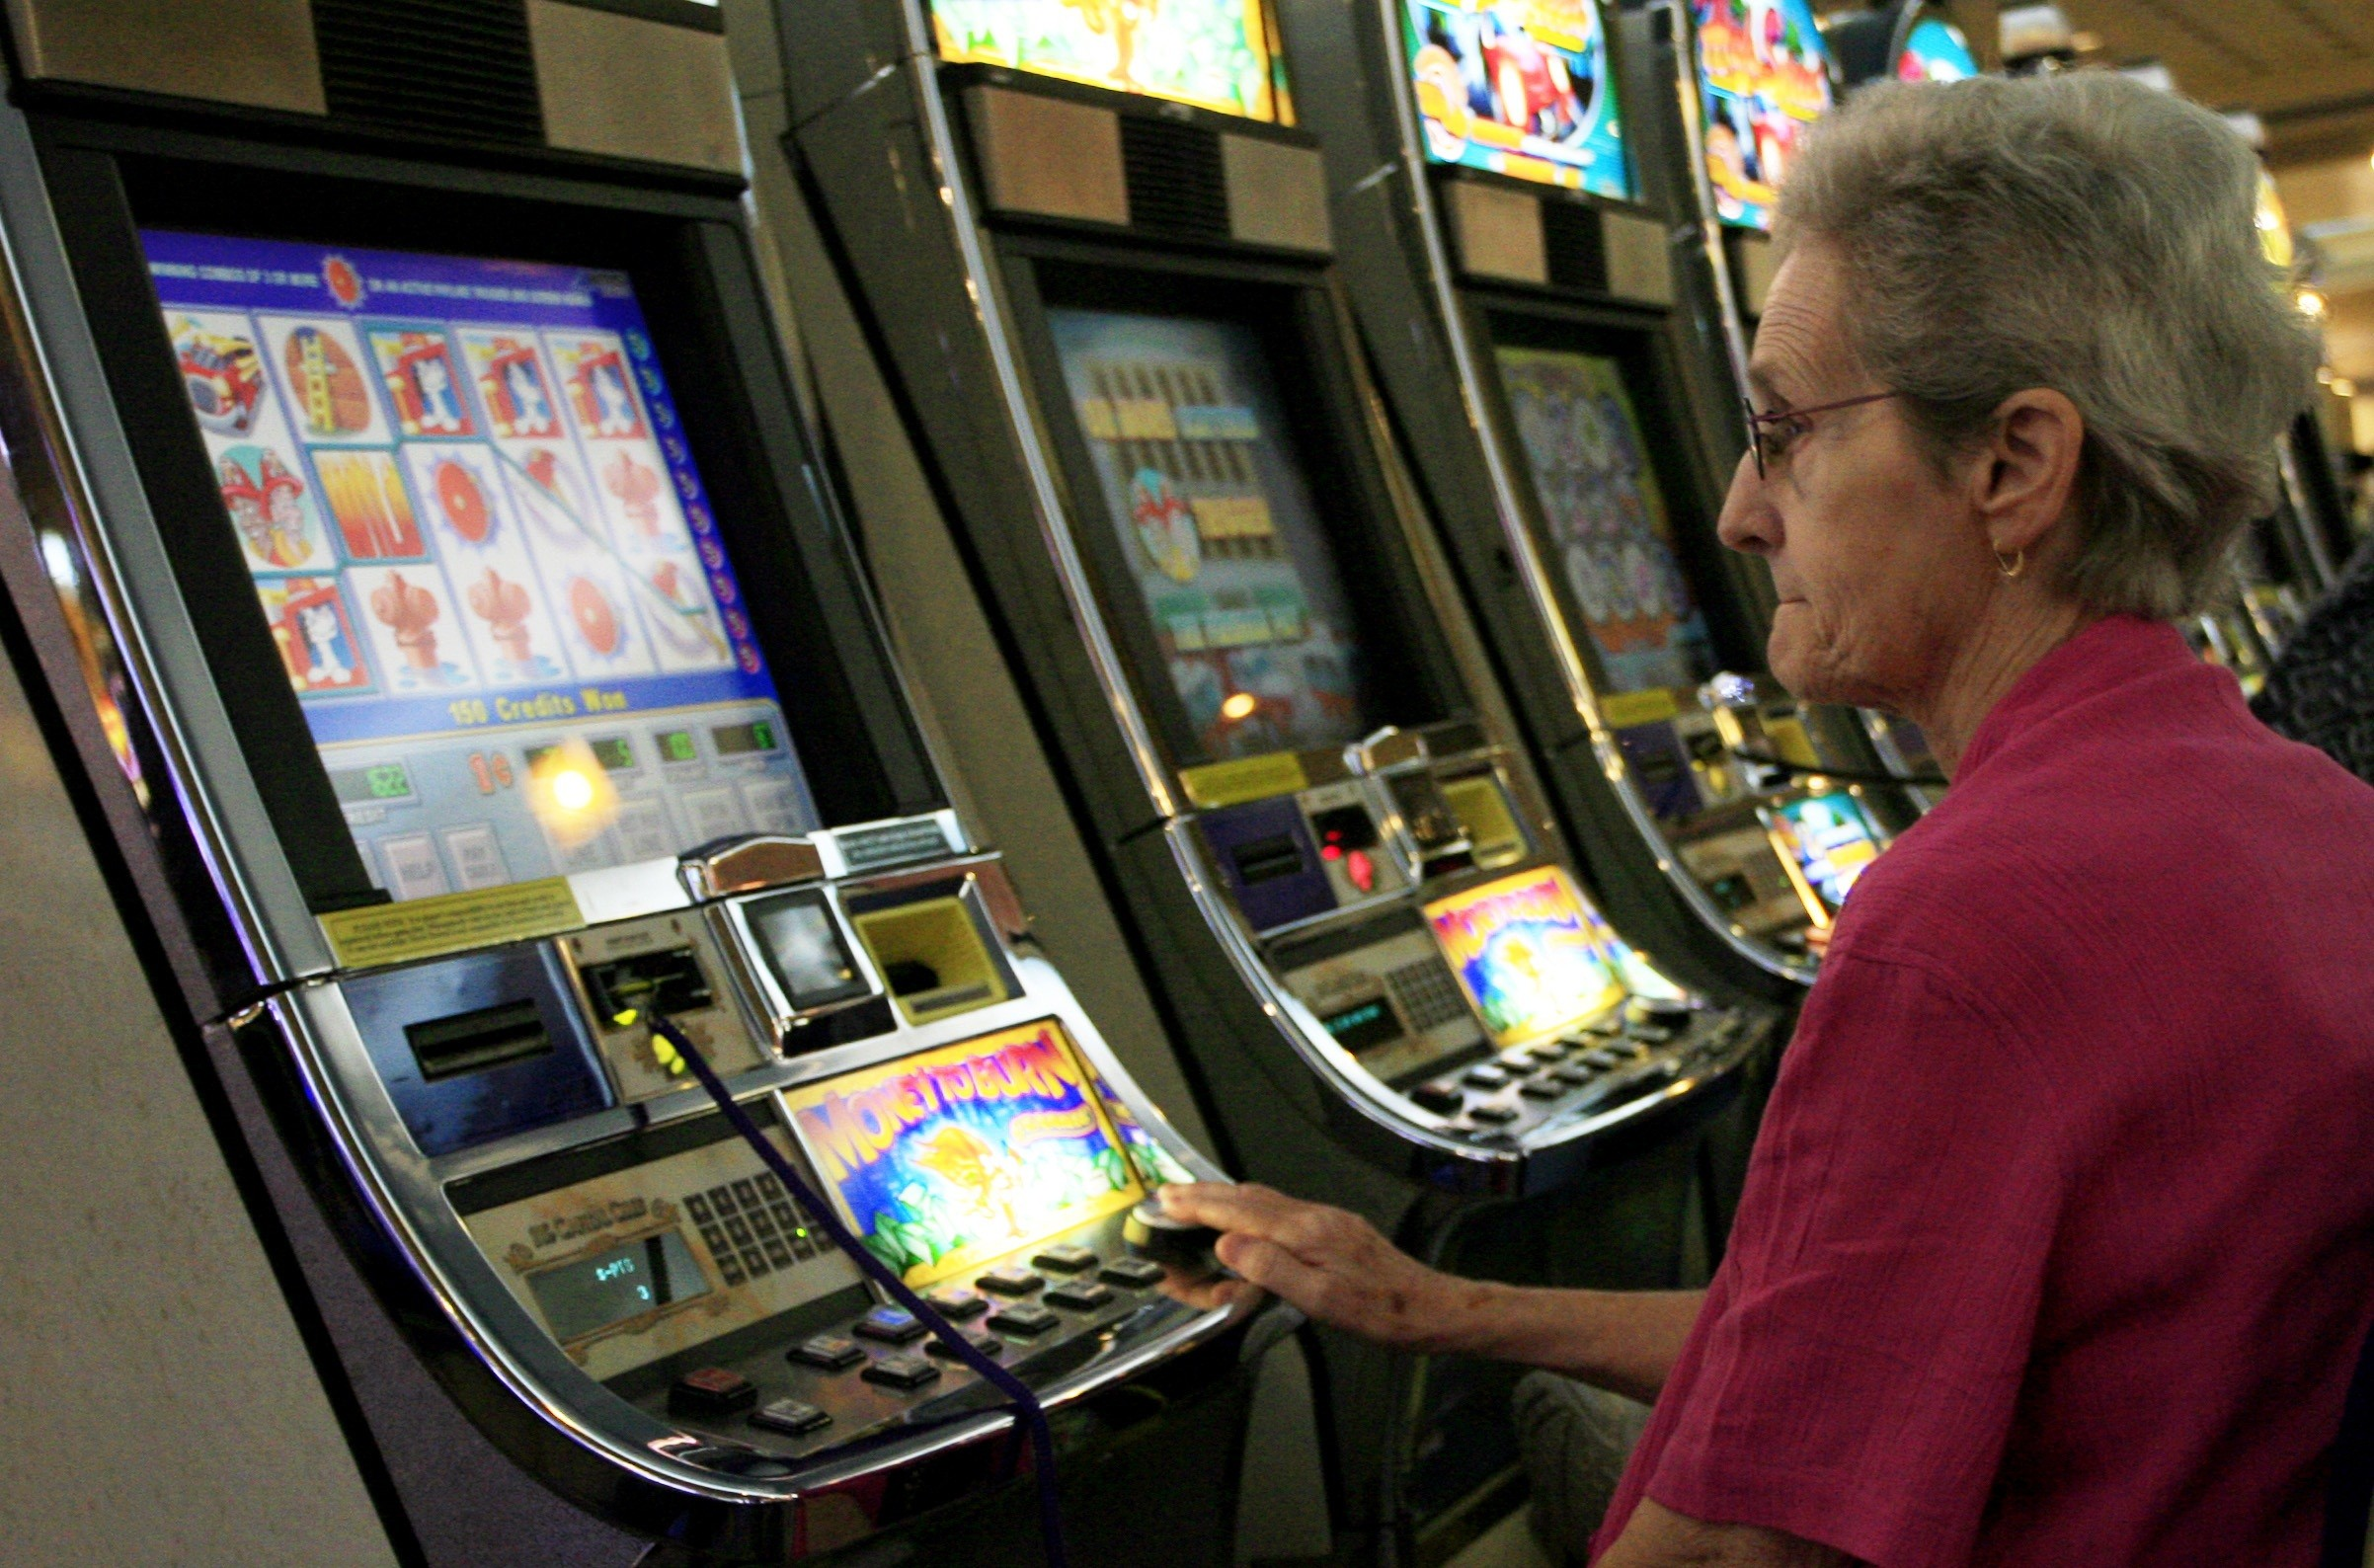 A tourist plays a slot machine while at a casino in Dover, Delaware